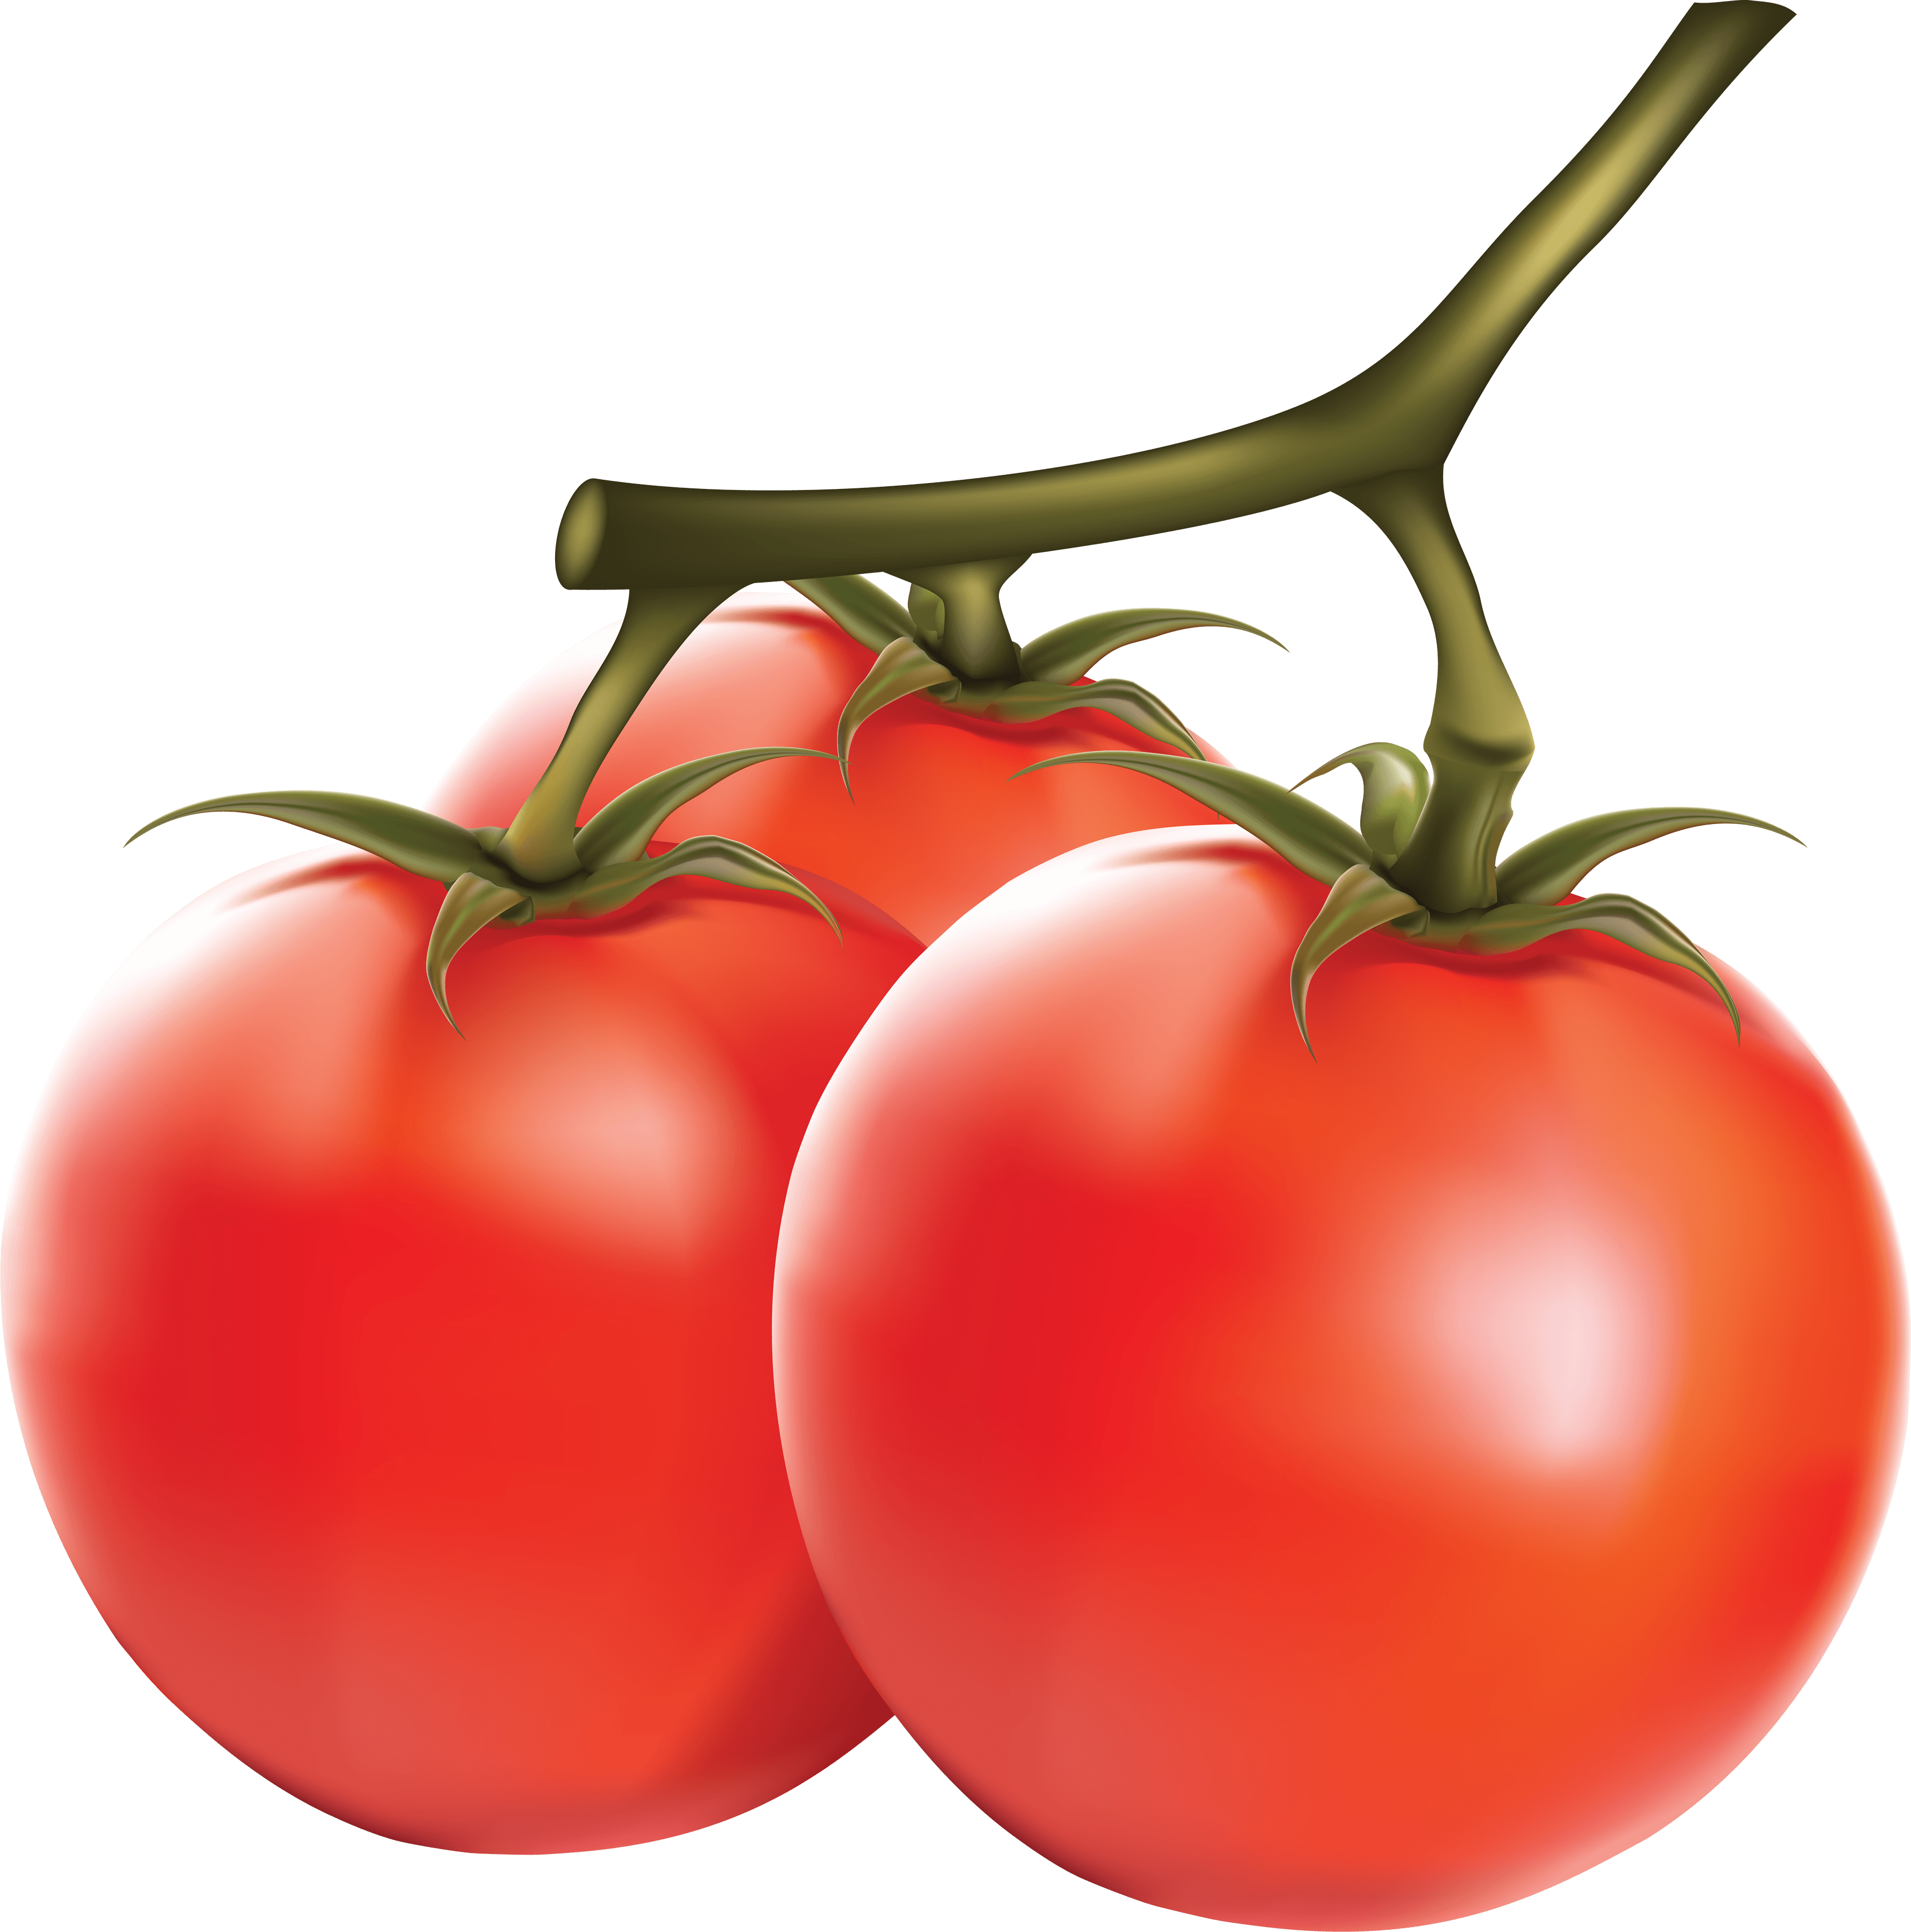 Tomatoes clipart local. Download tomato free png